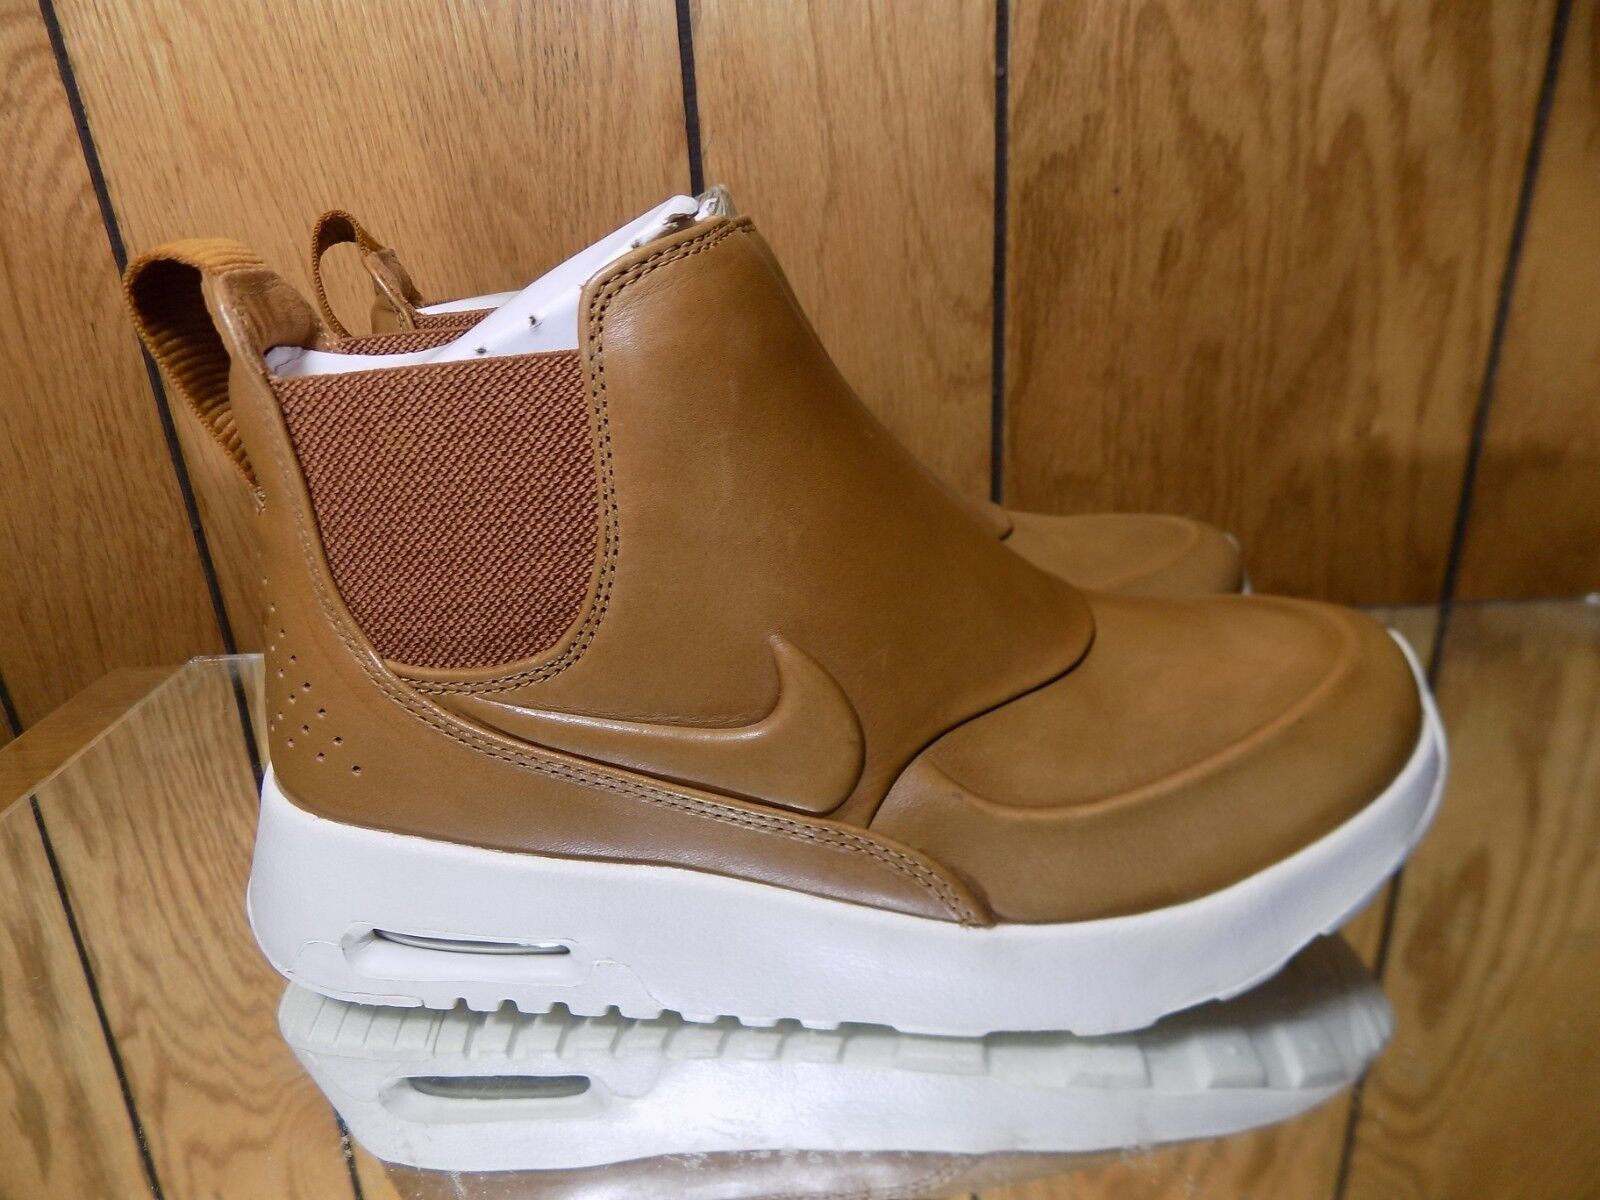 Nike Air Max Thea Mid Casual shoes Boots Ale Brown 859550-200 Wmns Sz 5